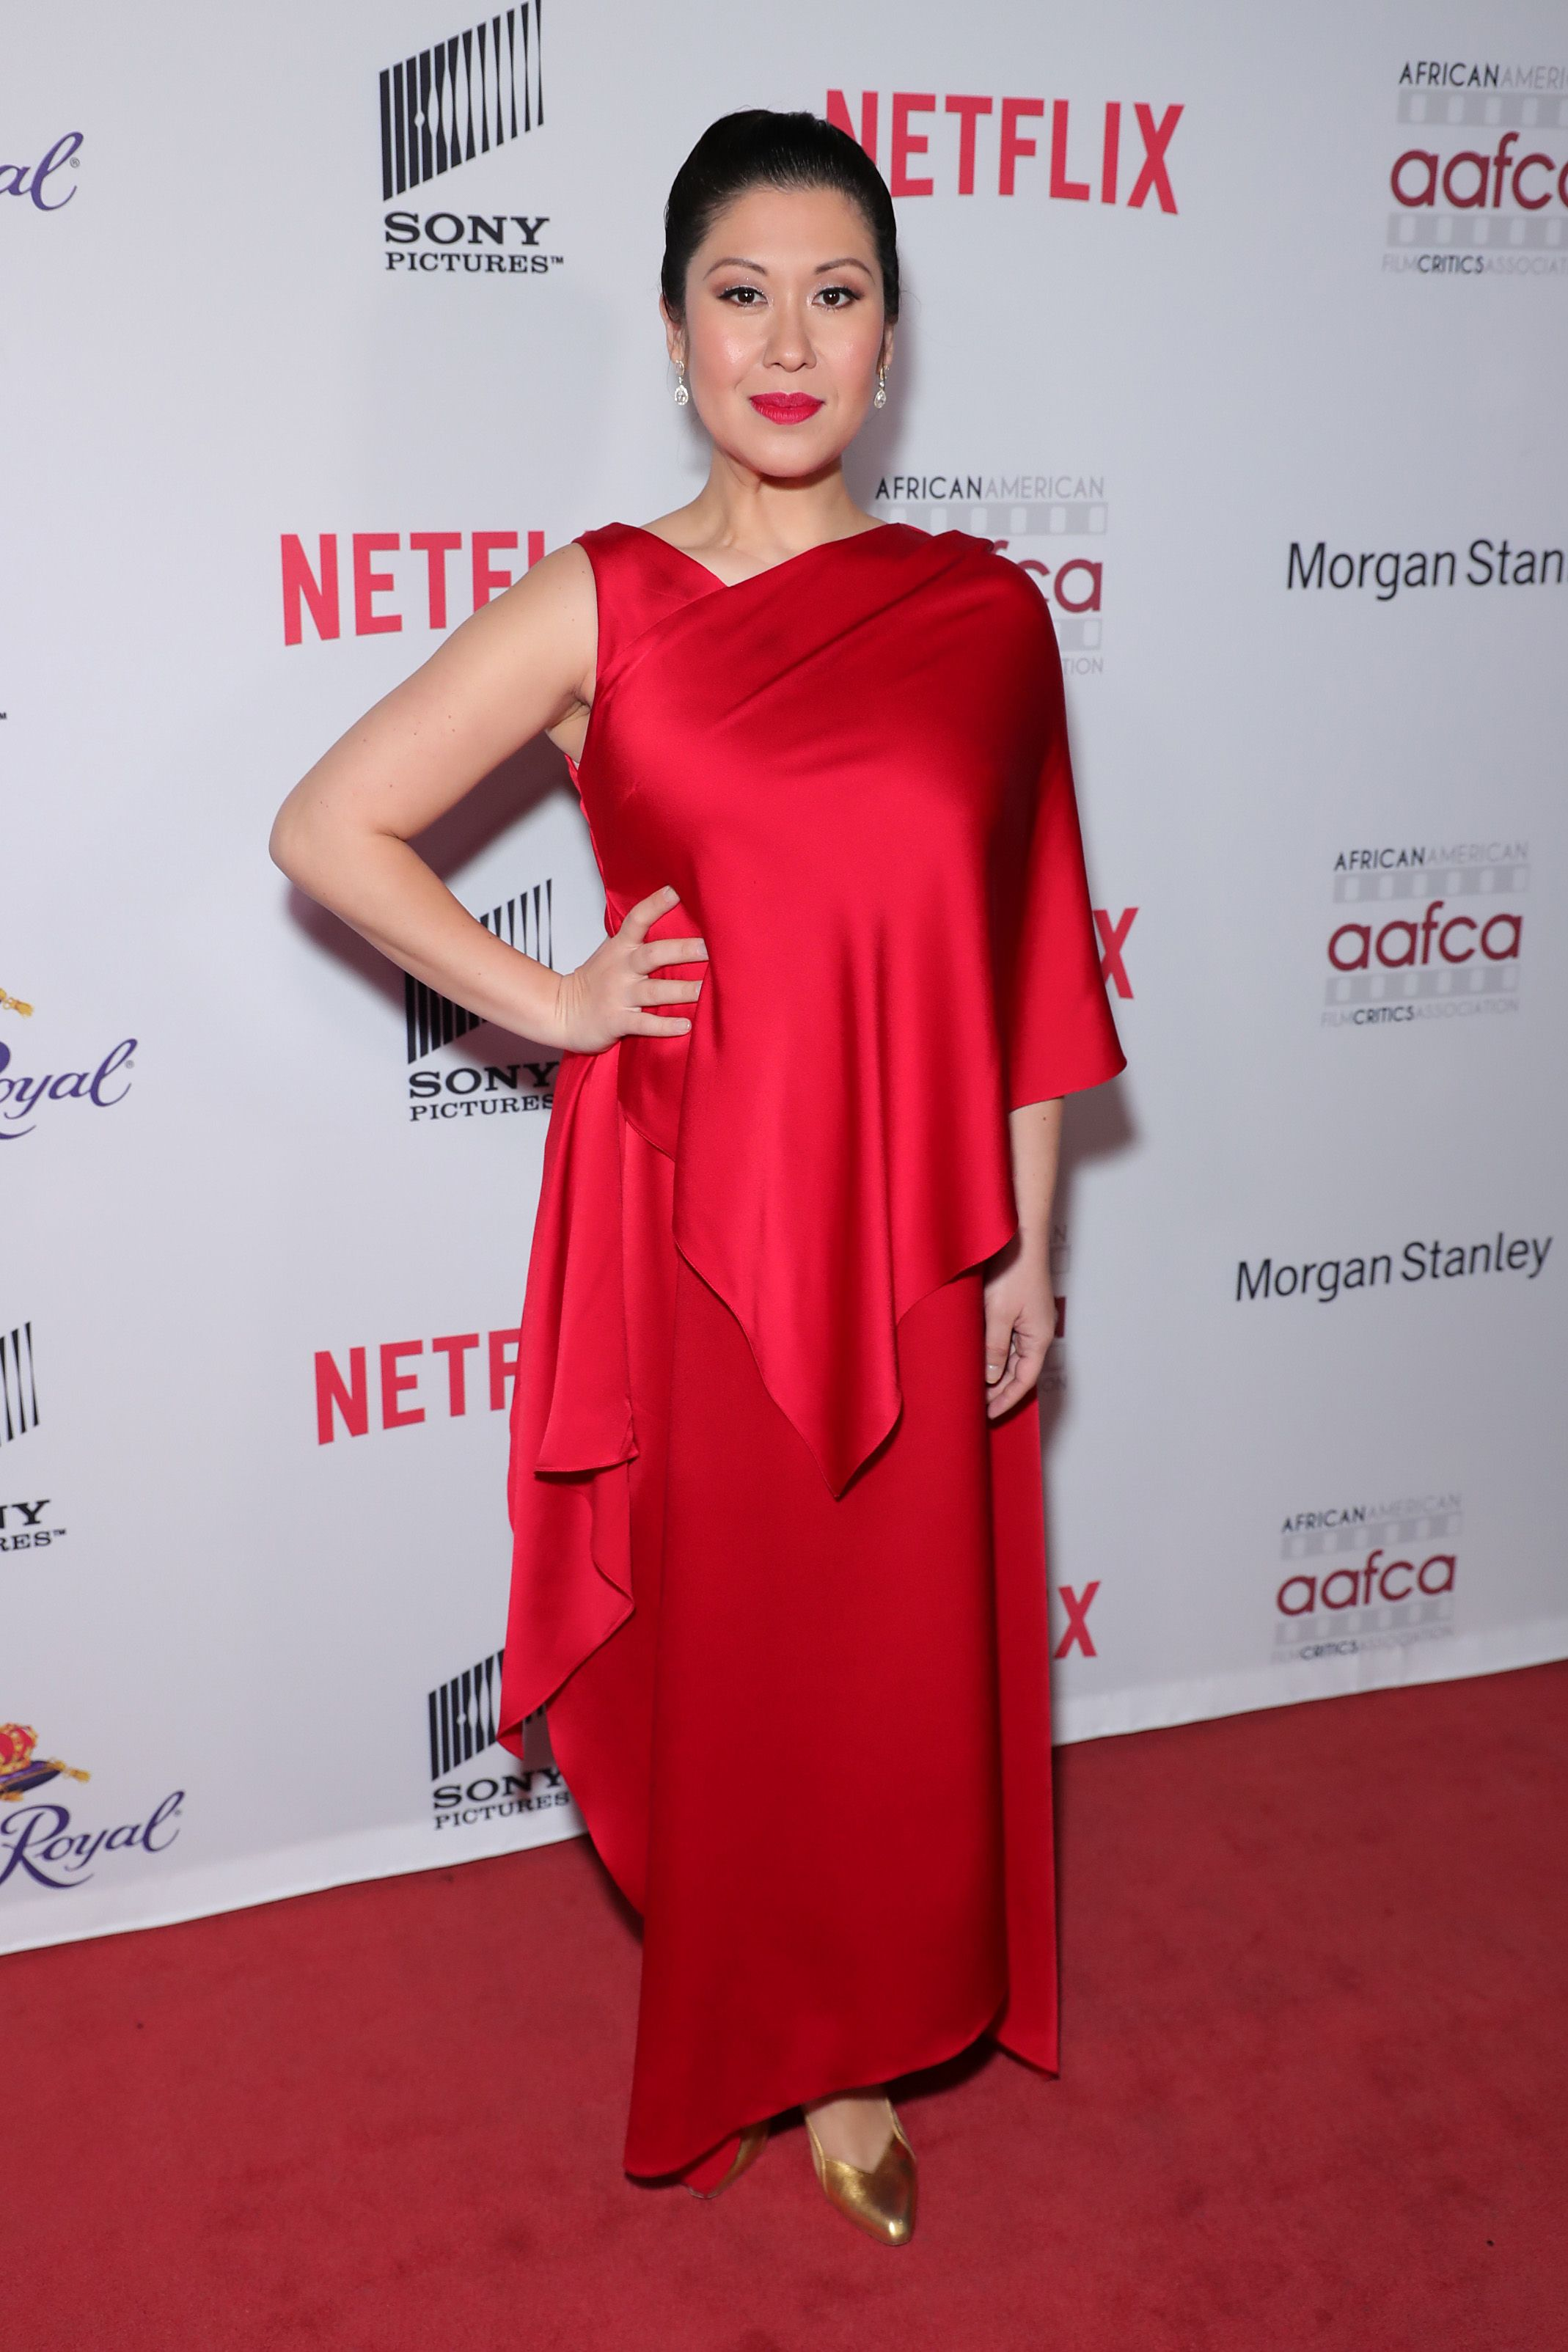 Ruthie Ann Miles looks gorgeous on a red carpet in this amazing red dress which she paired with golden pumps.